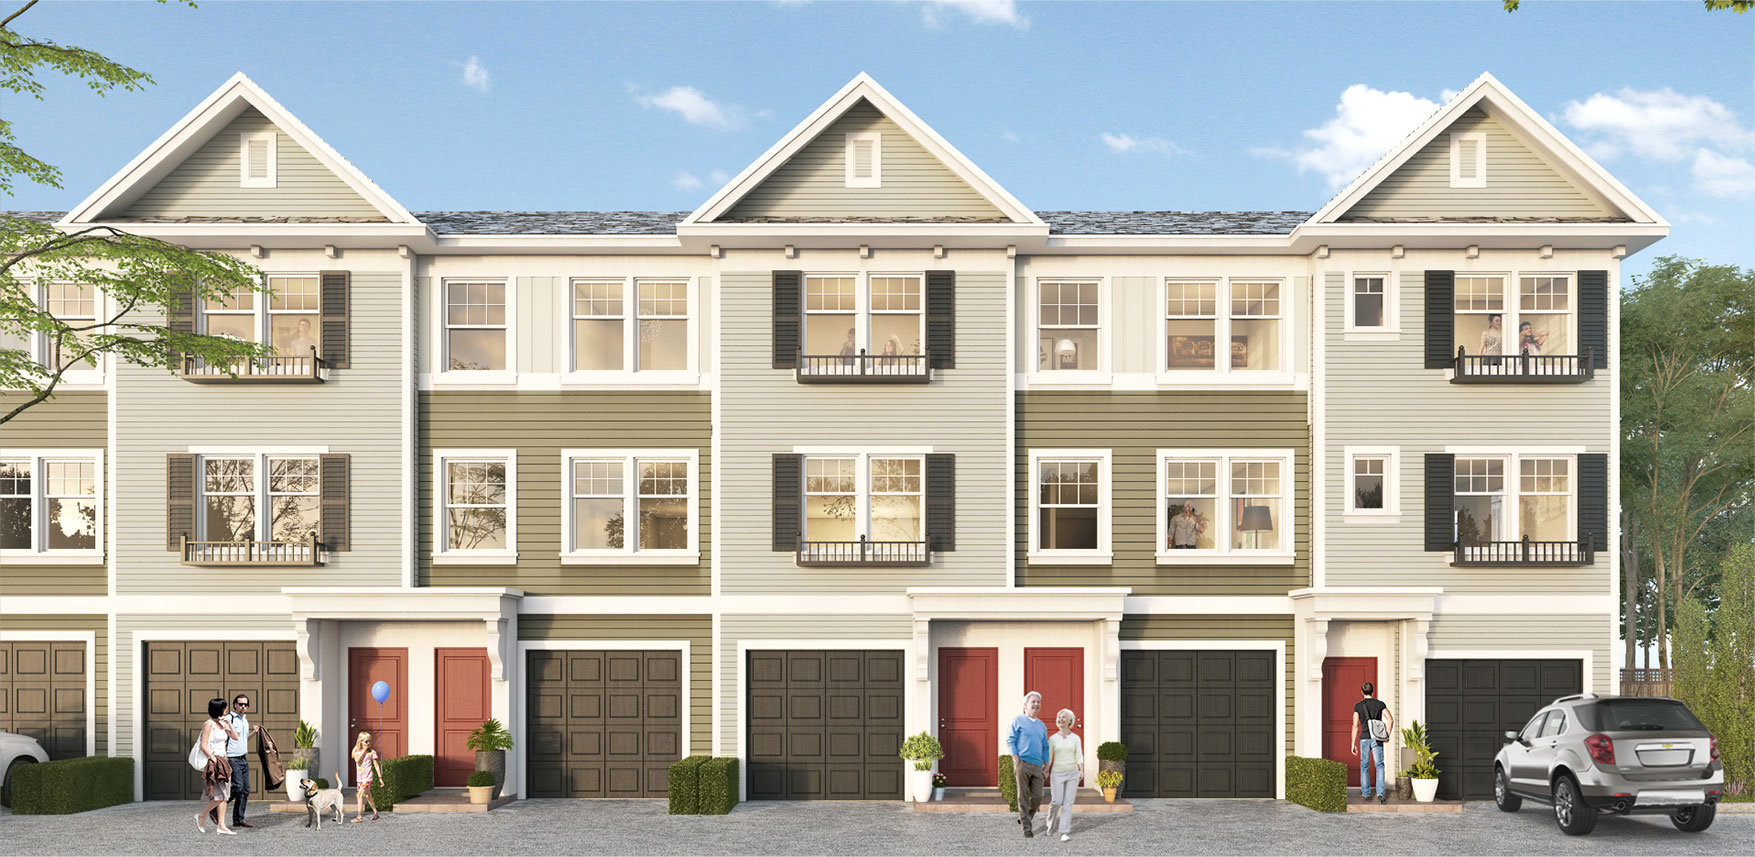 Rendering of Townhouses2800 Allwood St, Abbotsford, BC V2T, Canada Exterior Townhomes!